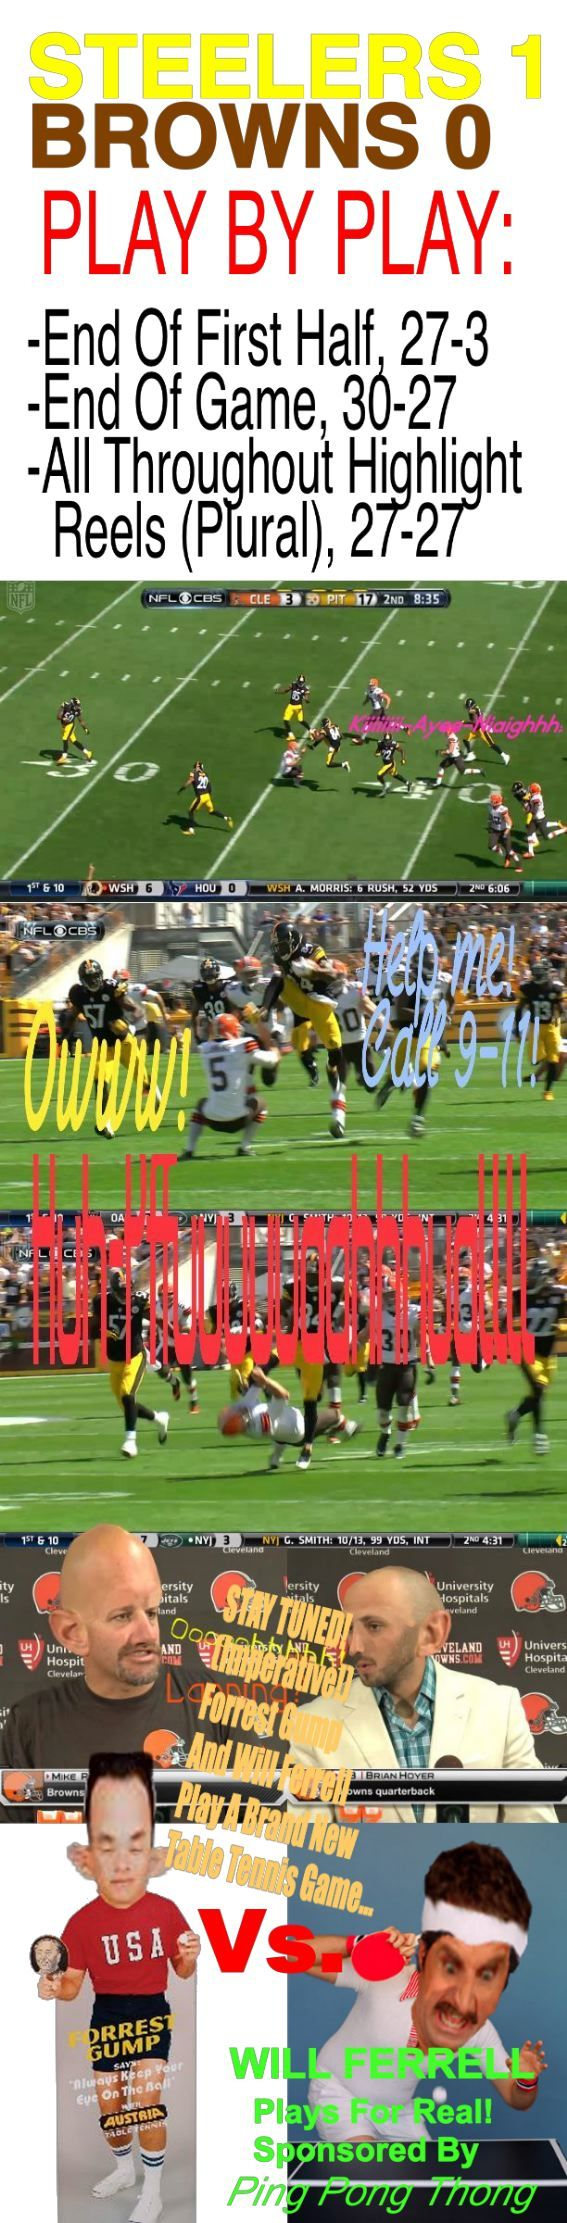 Antonio Brown did a Flying Karate Kick on a Punt Return in Game 1 of Regular Season to see Spencer Lanning at Heinz Field.  Get it?  Landing.  Spencer´s Lanning...